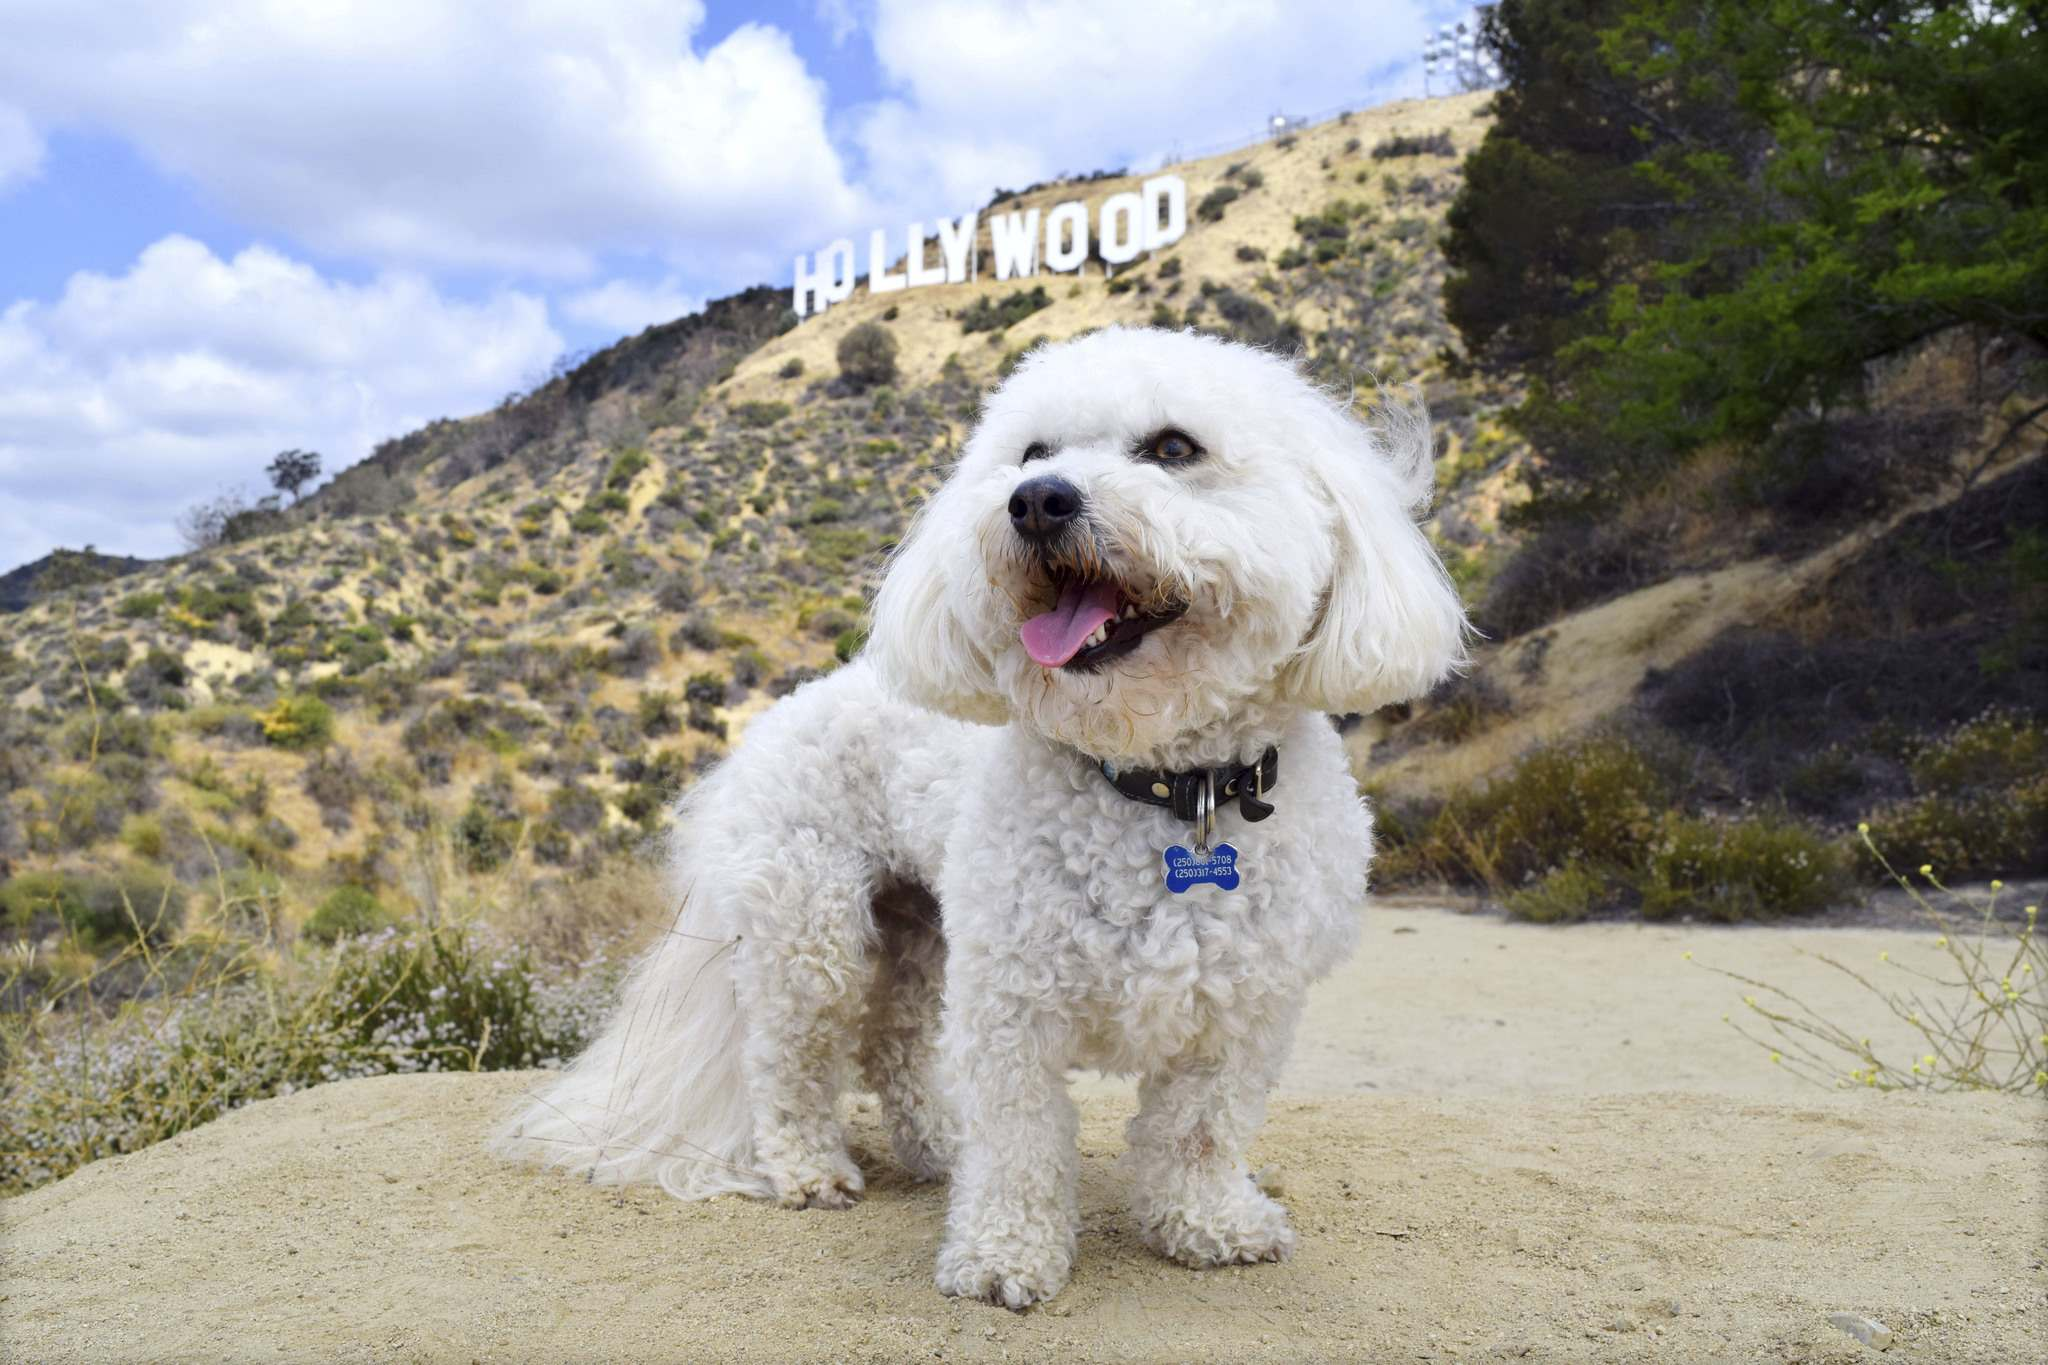 Not knowing why it's so important, reporter Steve MacNaull's dog Benji poses with the Hollywood sign in the background during a Bikes and Hikes L.A. trek through the Hollywood Hills.</p>